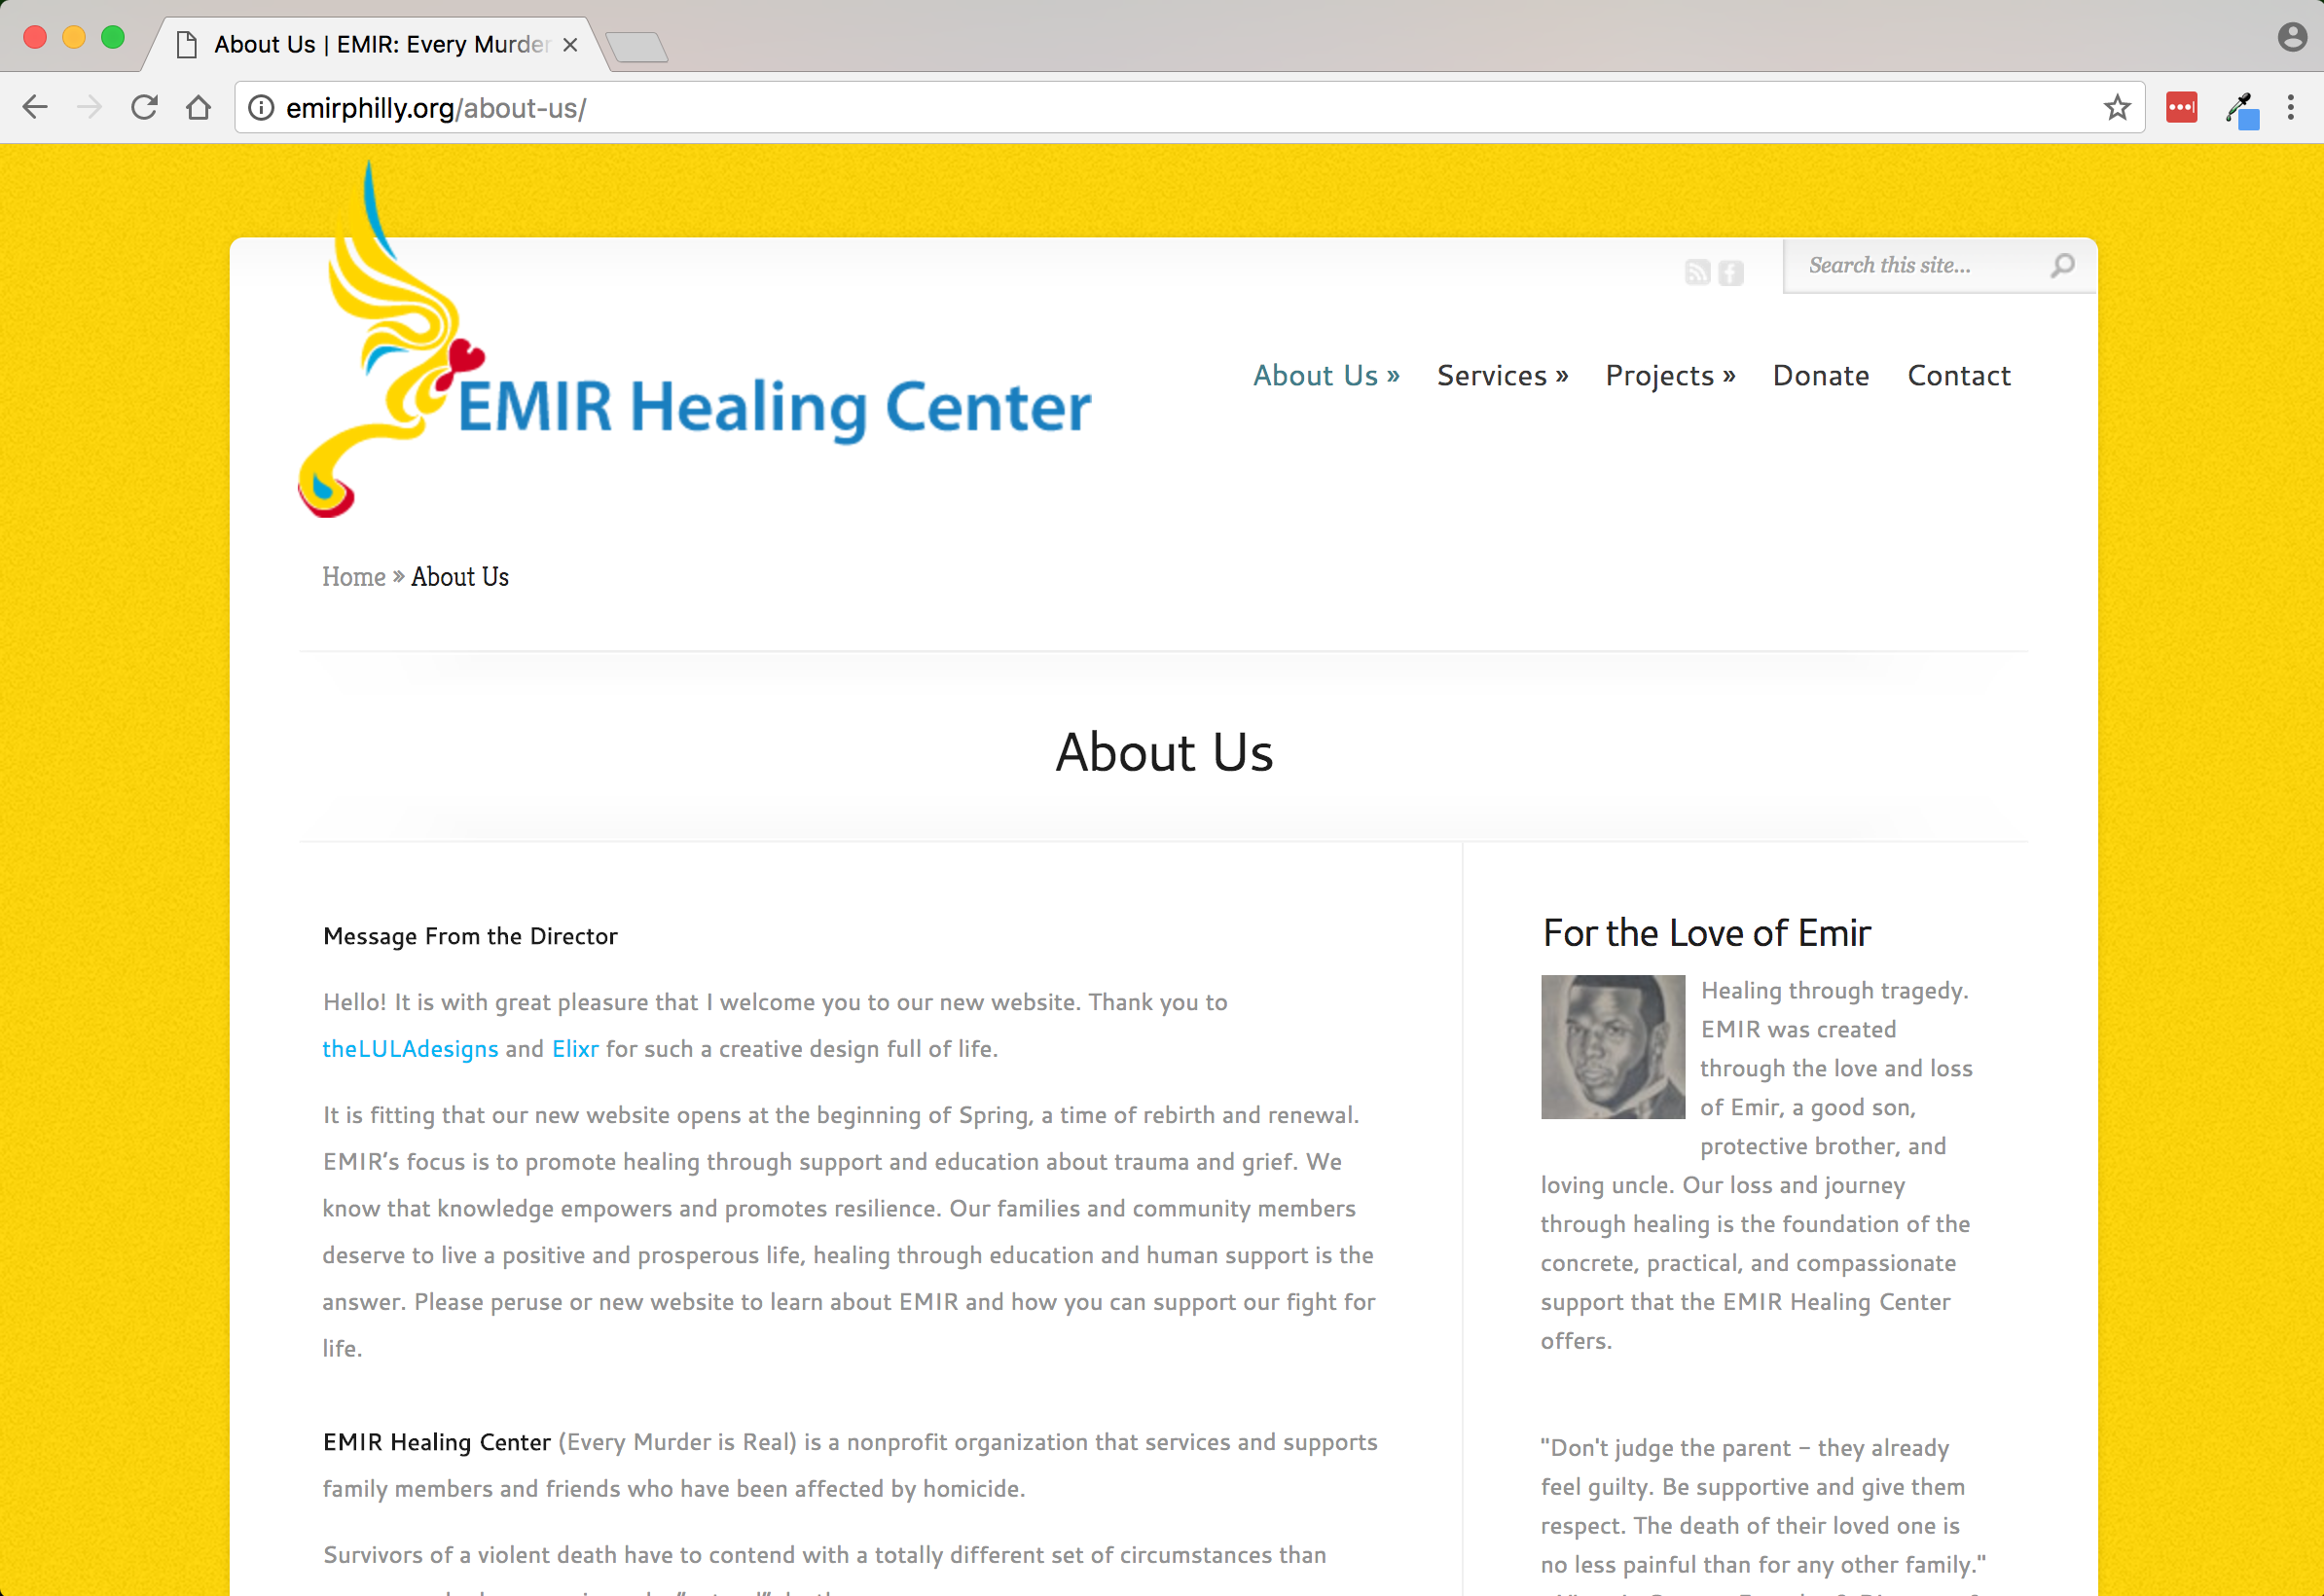 EMIR Healing Center About page